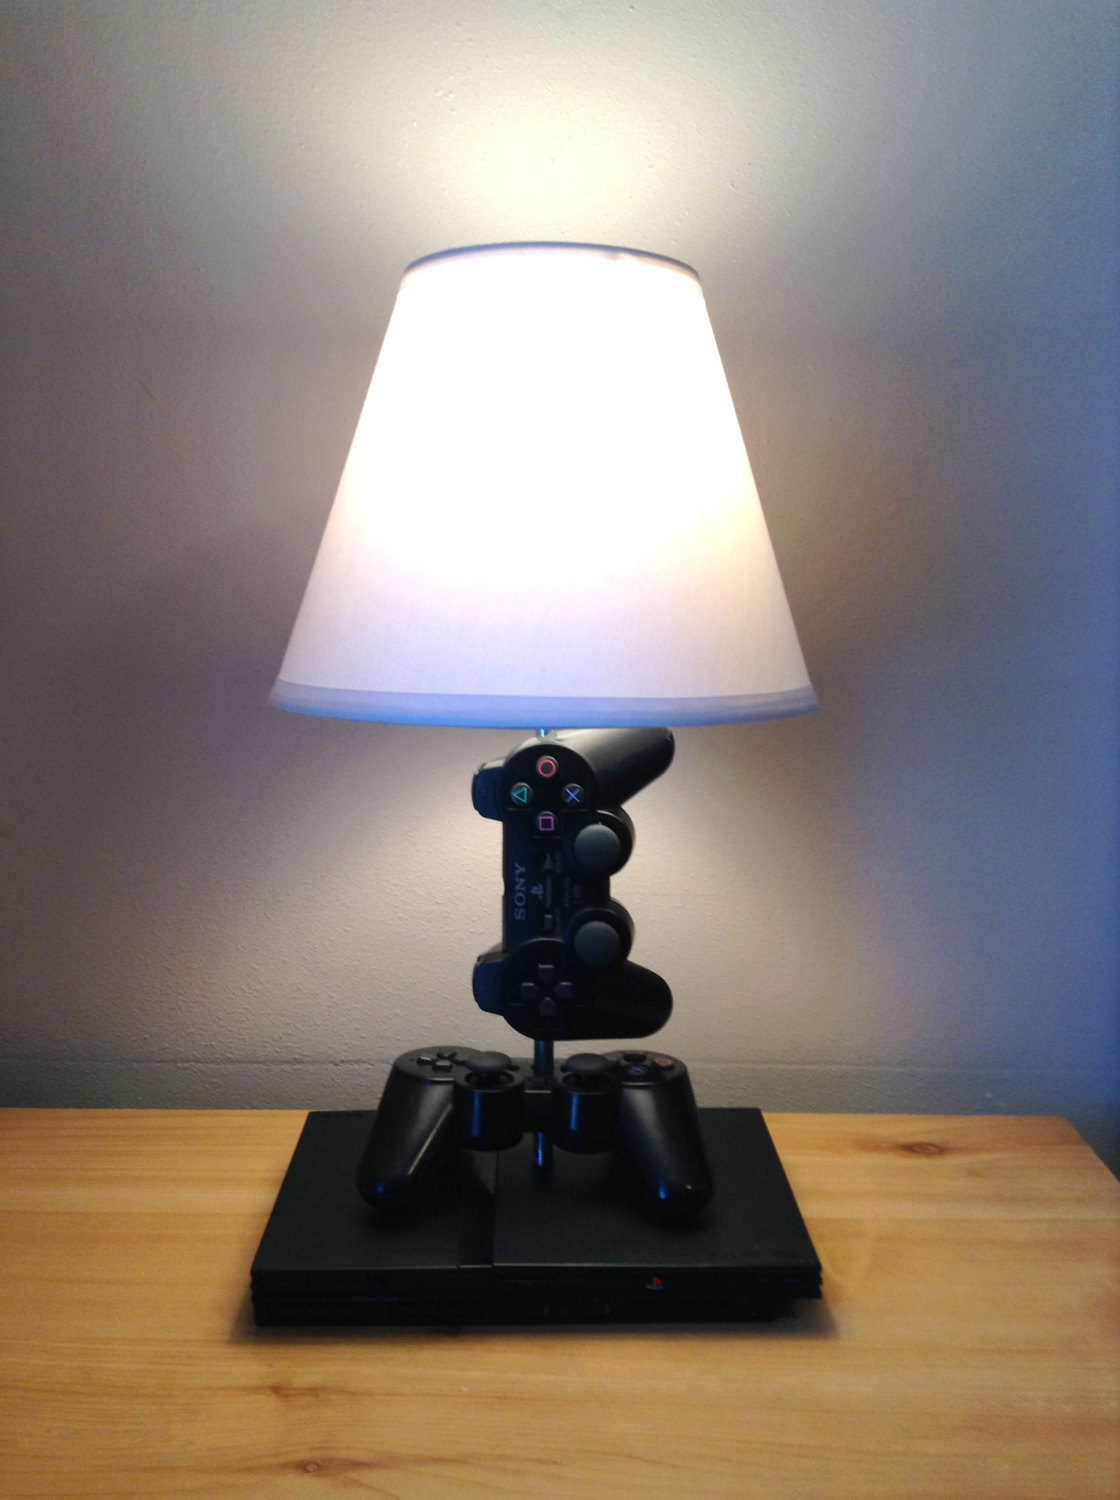 Lamps made from old game consoles, controllers and